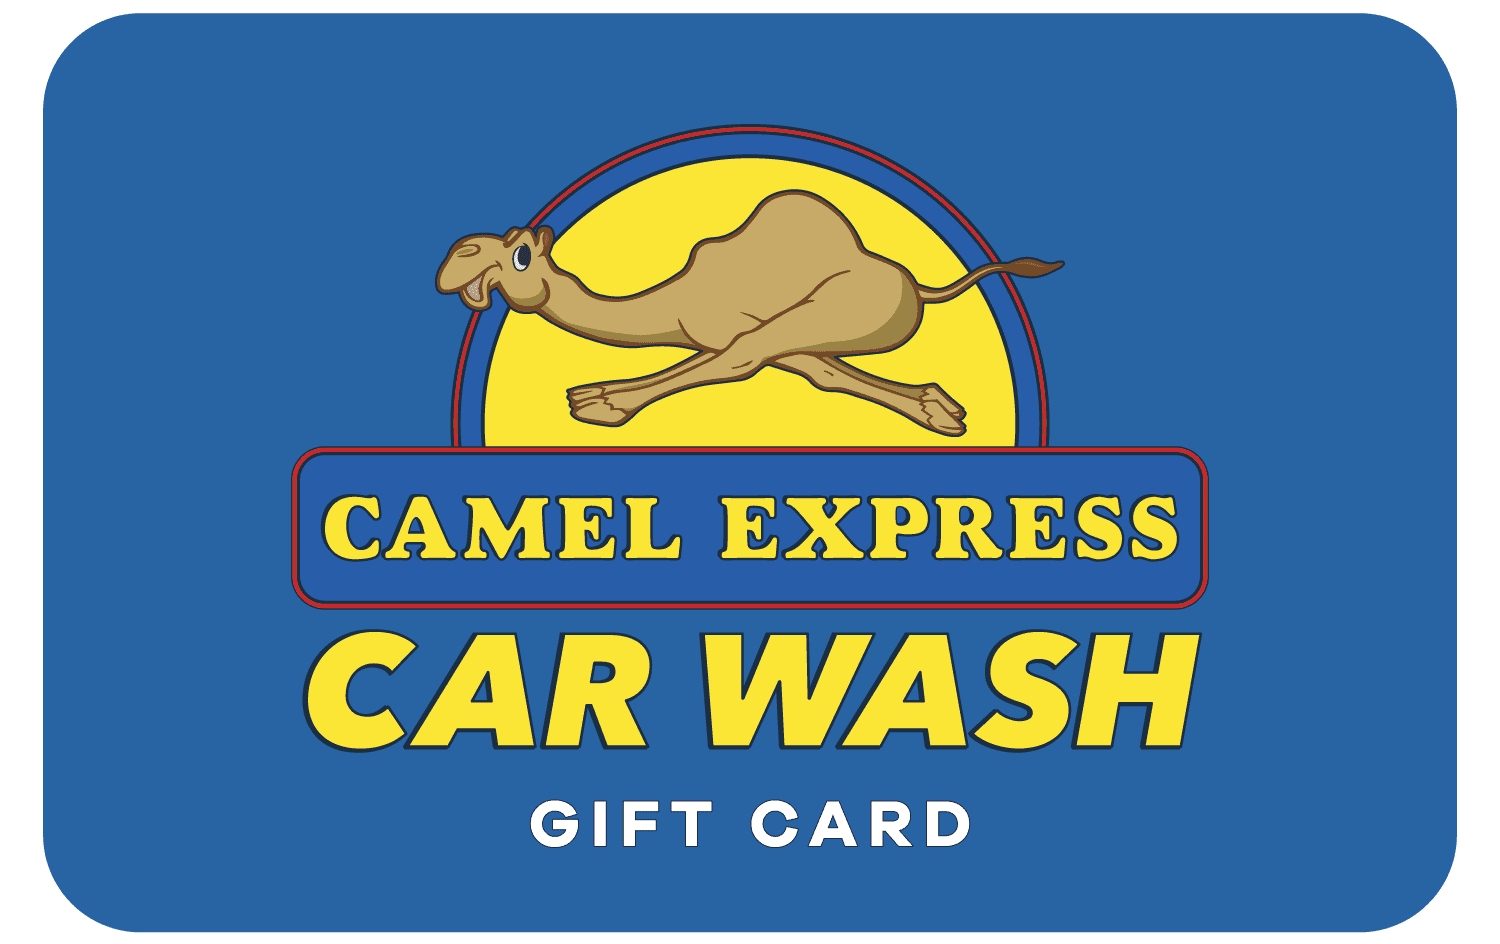 camel express gift card